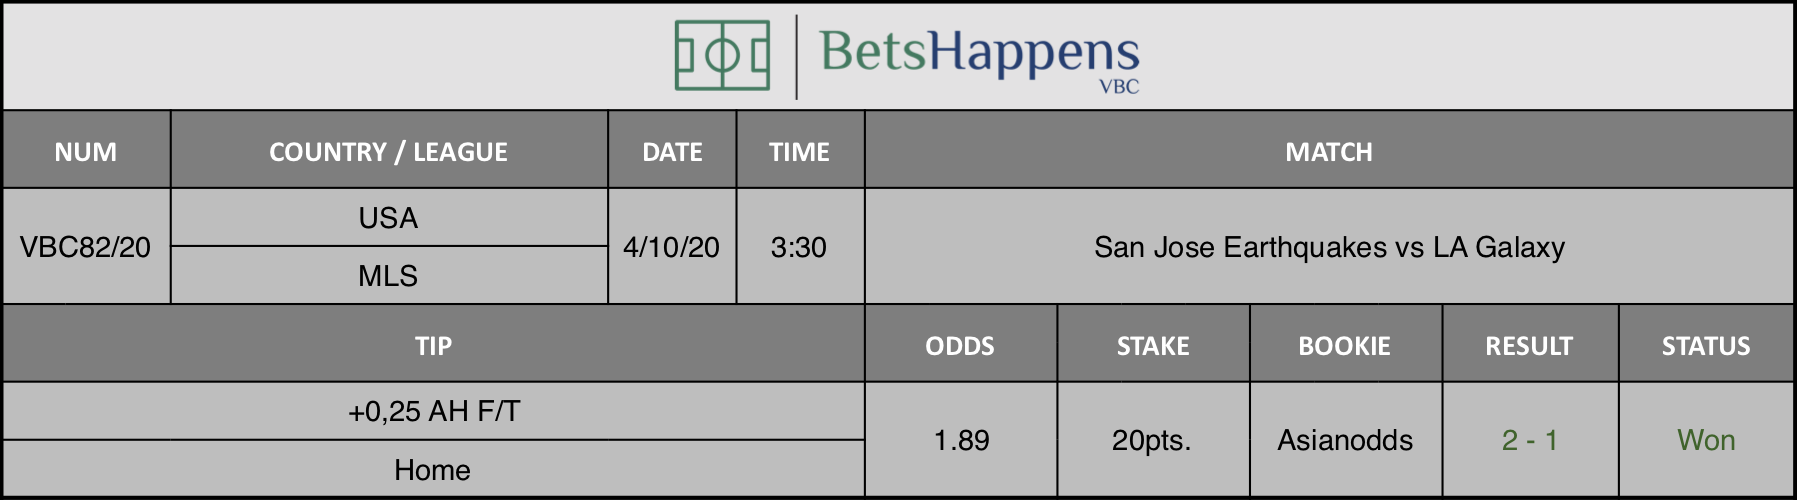 Results of our advice for the San Jose Earthquakes vs LA Galaxy game where +0,25 AH F/T Home is recommended.